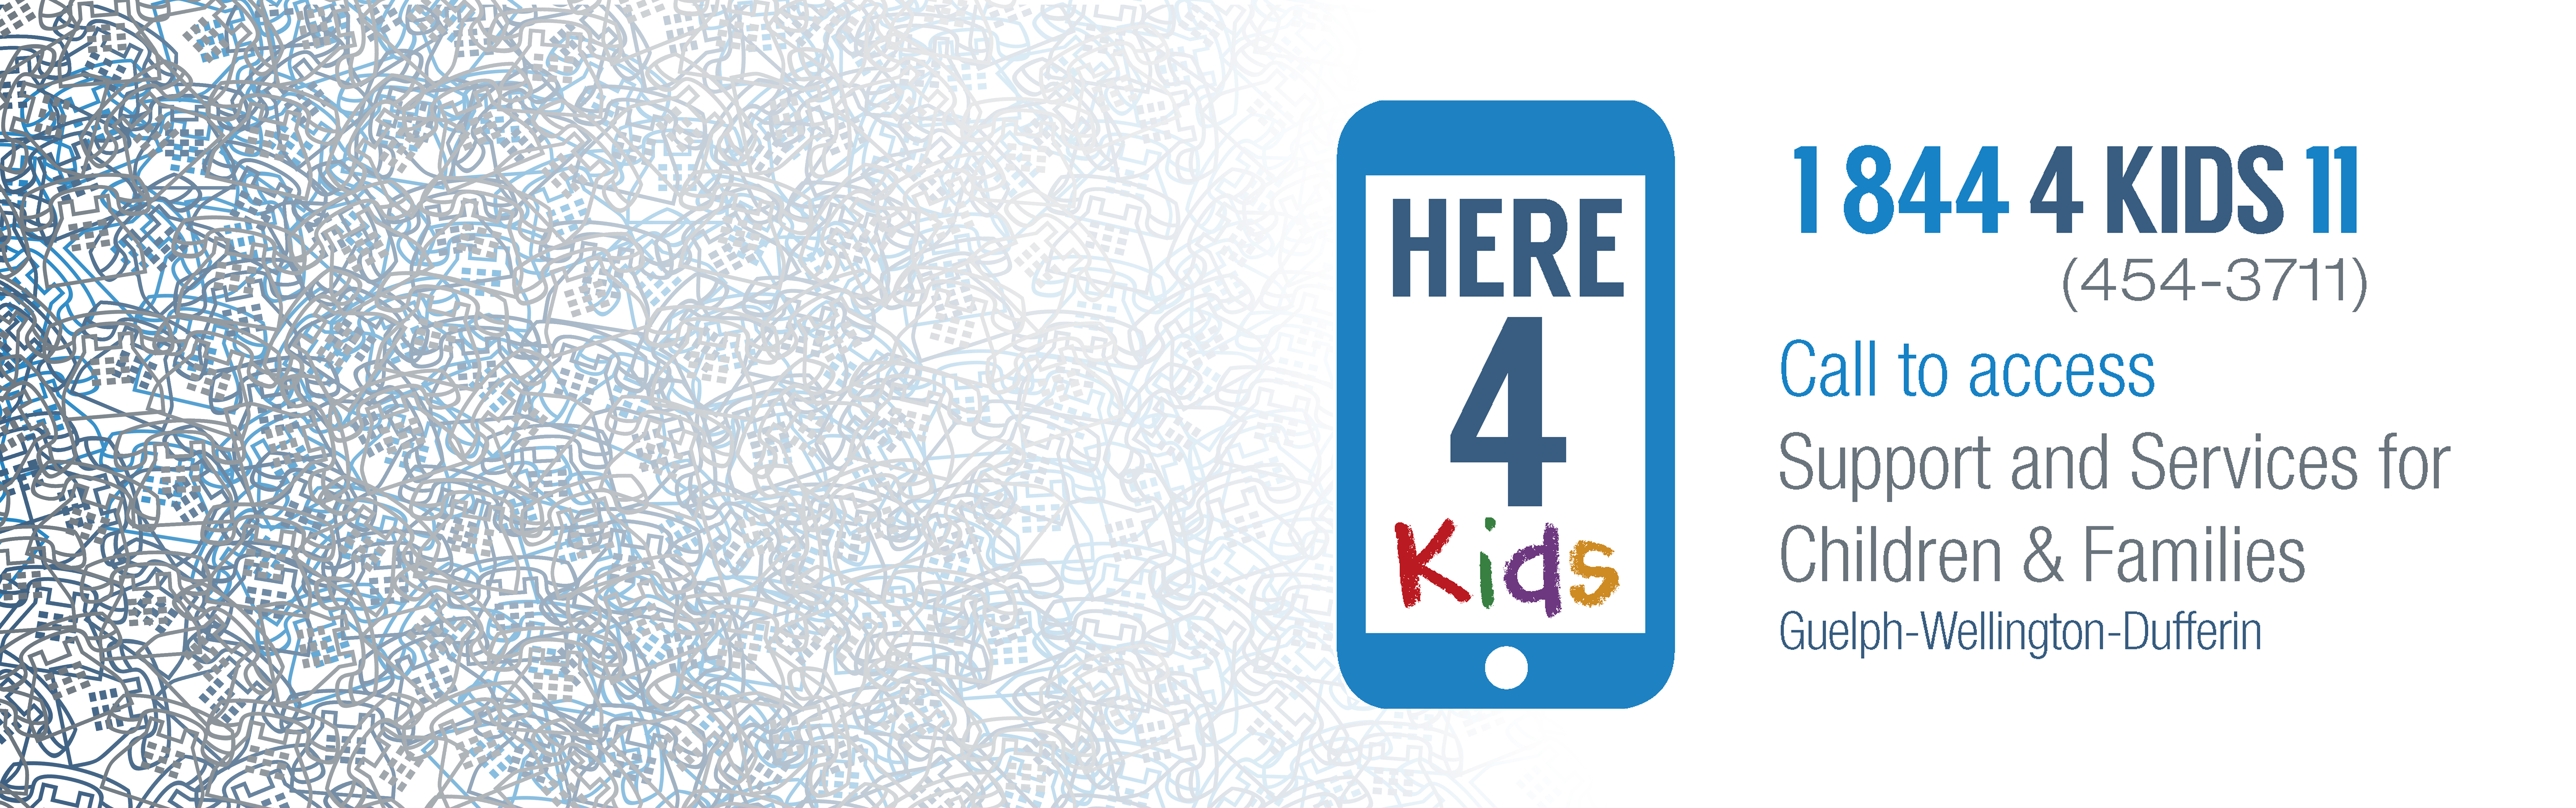 Here4Kids launches to support families in Guelph-Wellington-Dufferin